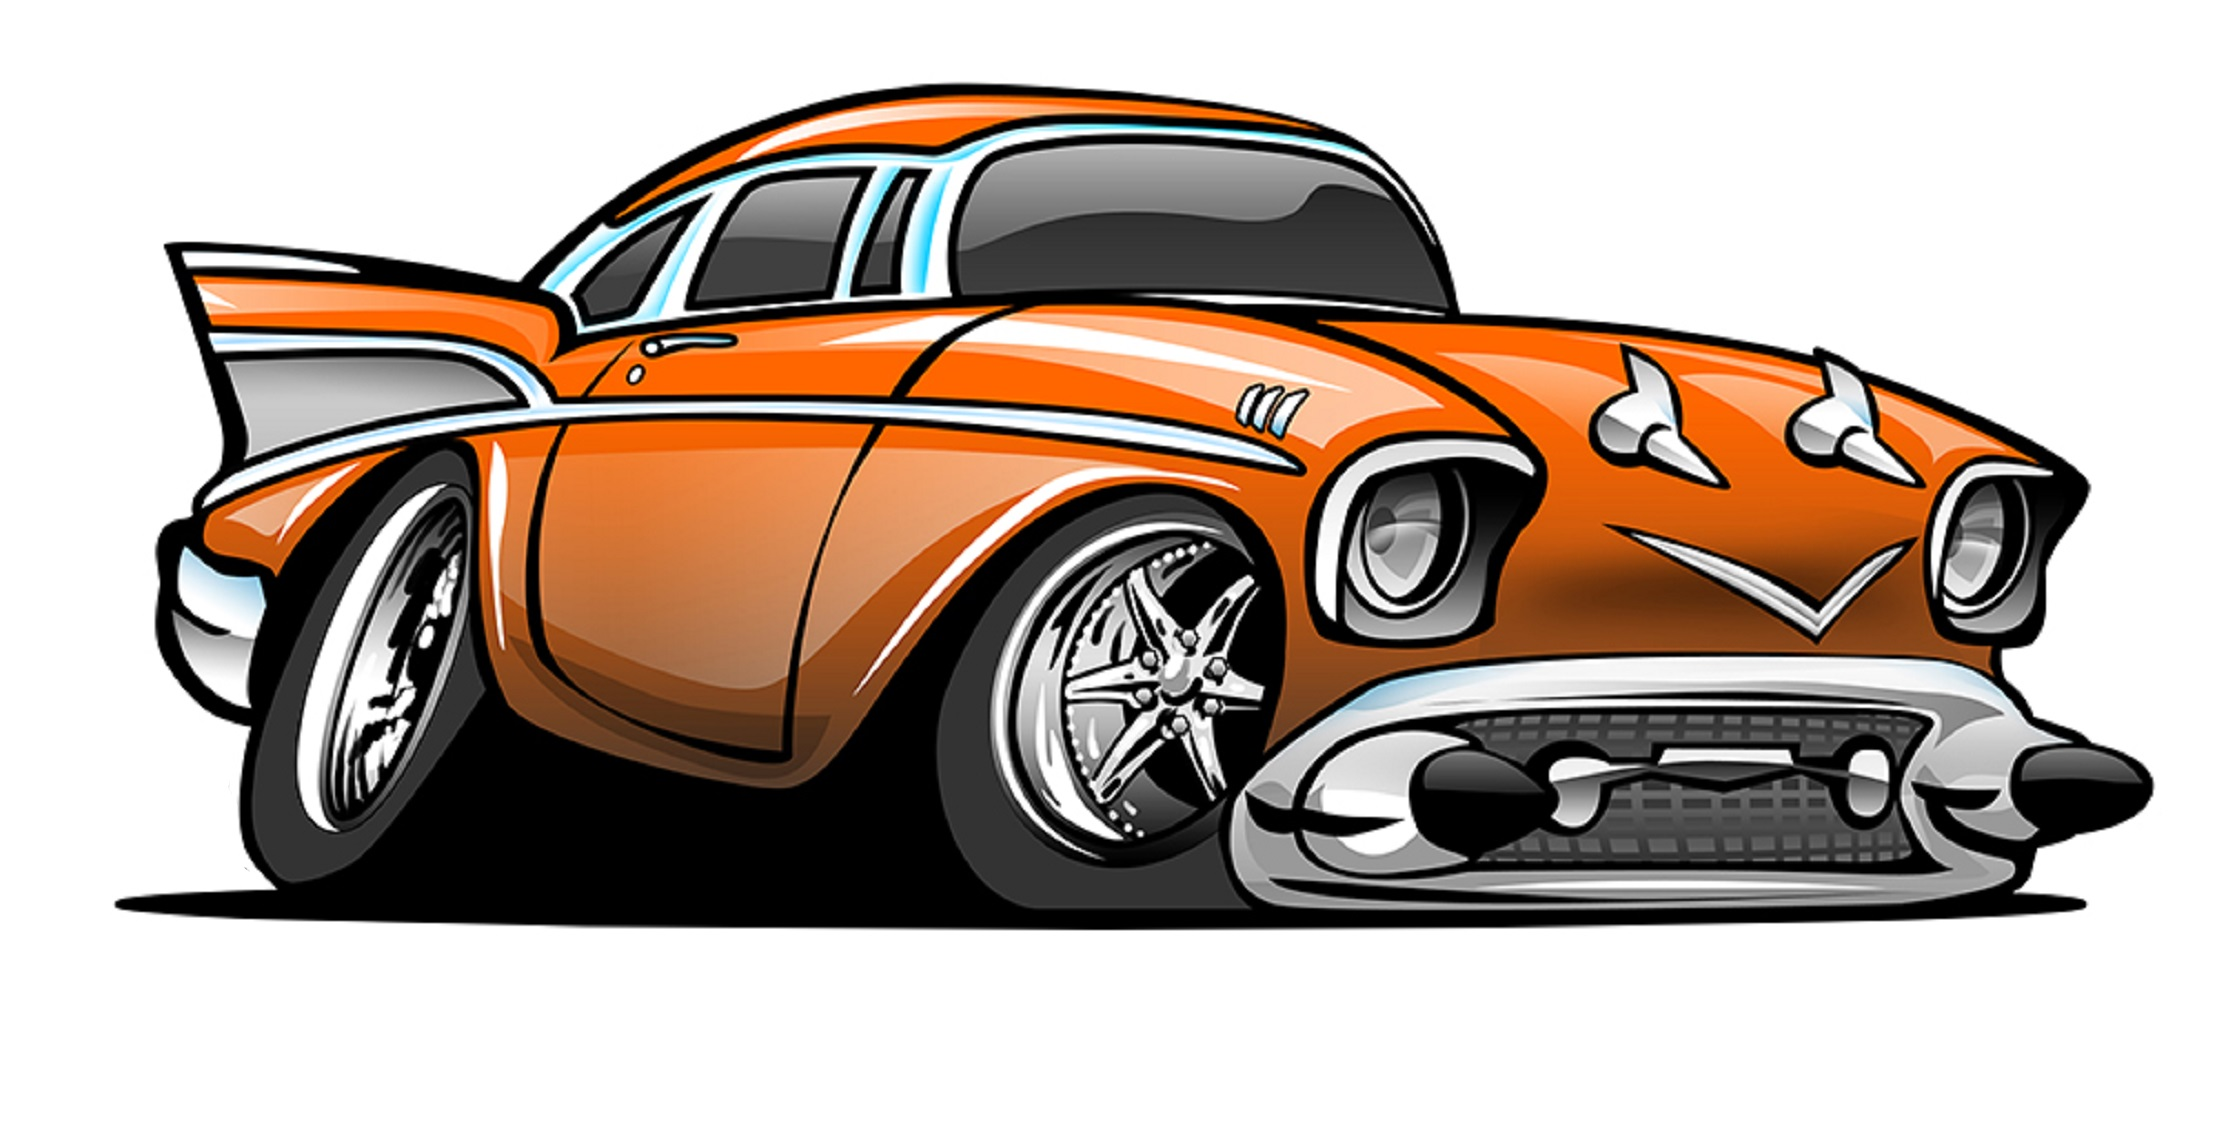 2237x1123 Pin By Kerry Sr On Cartruck Illustrations